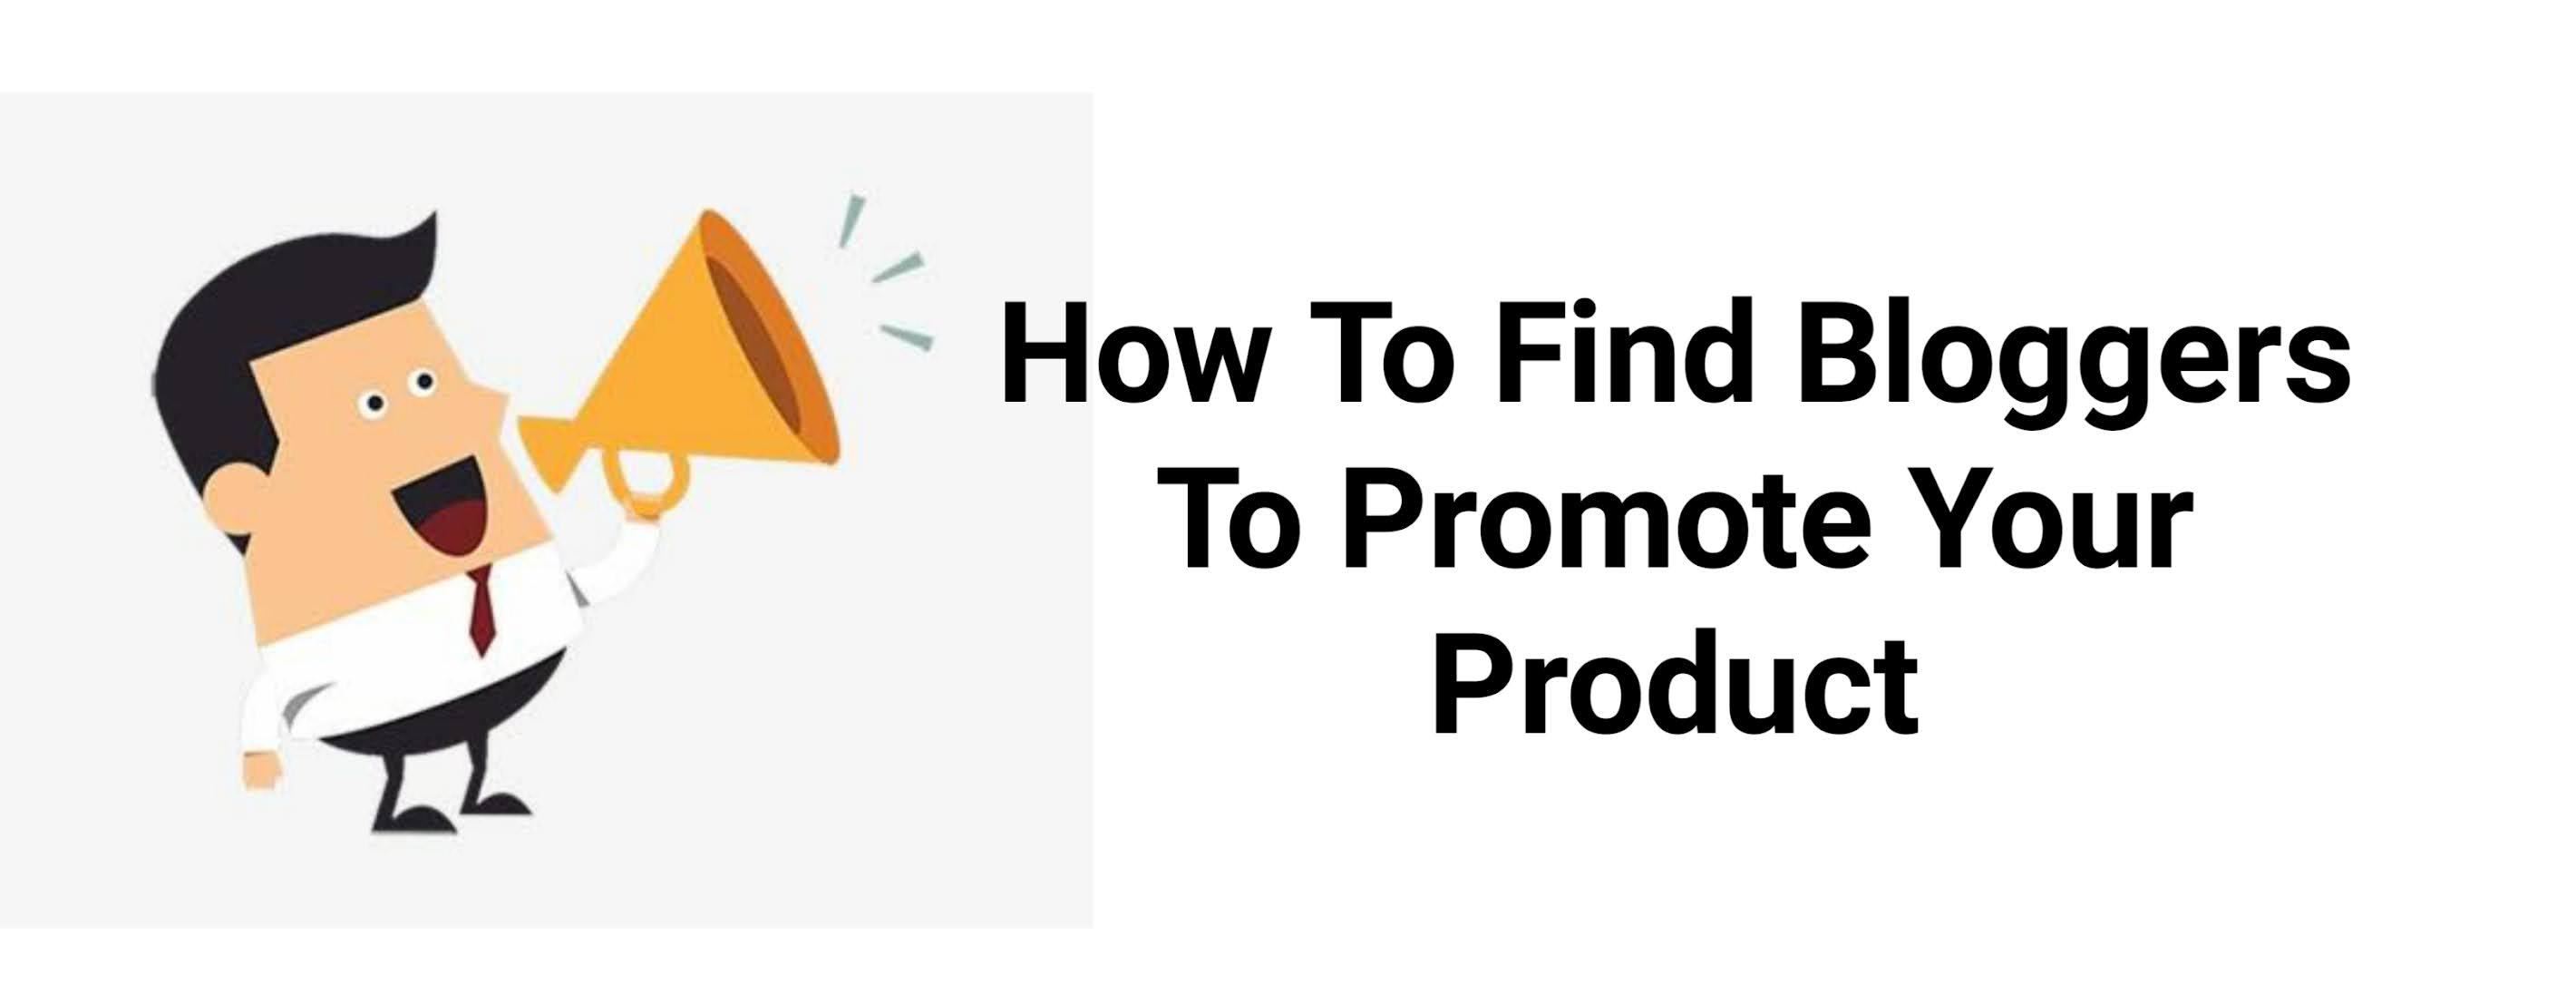 How To Find Bloggers To Promote Your Product